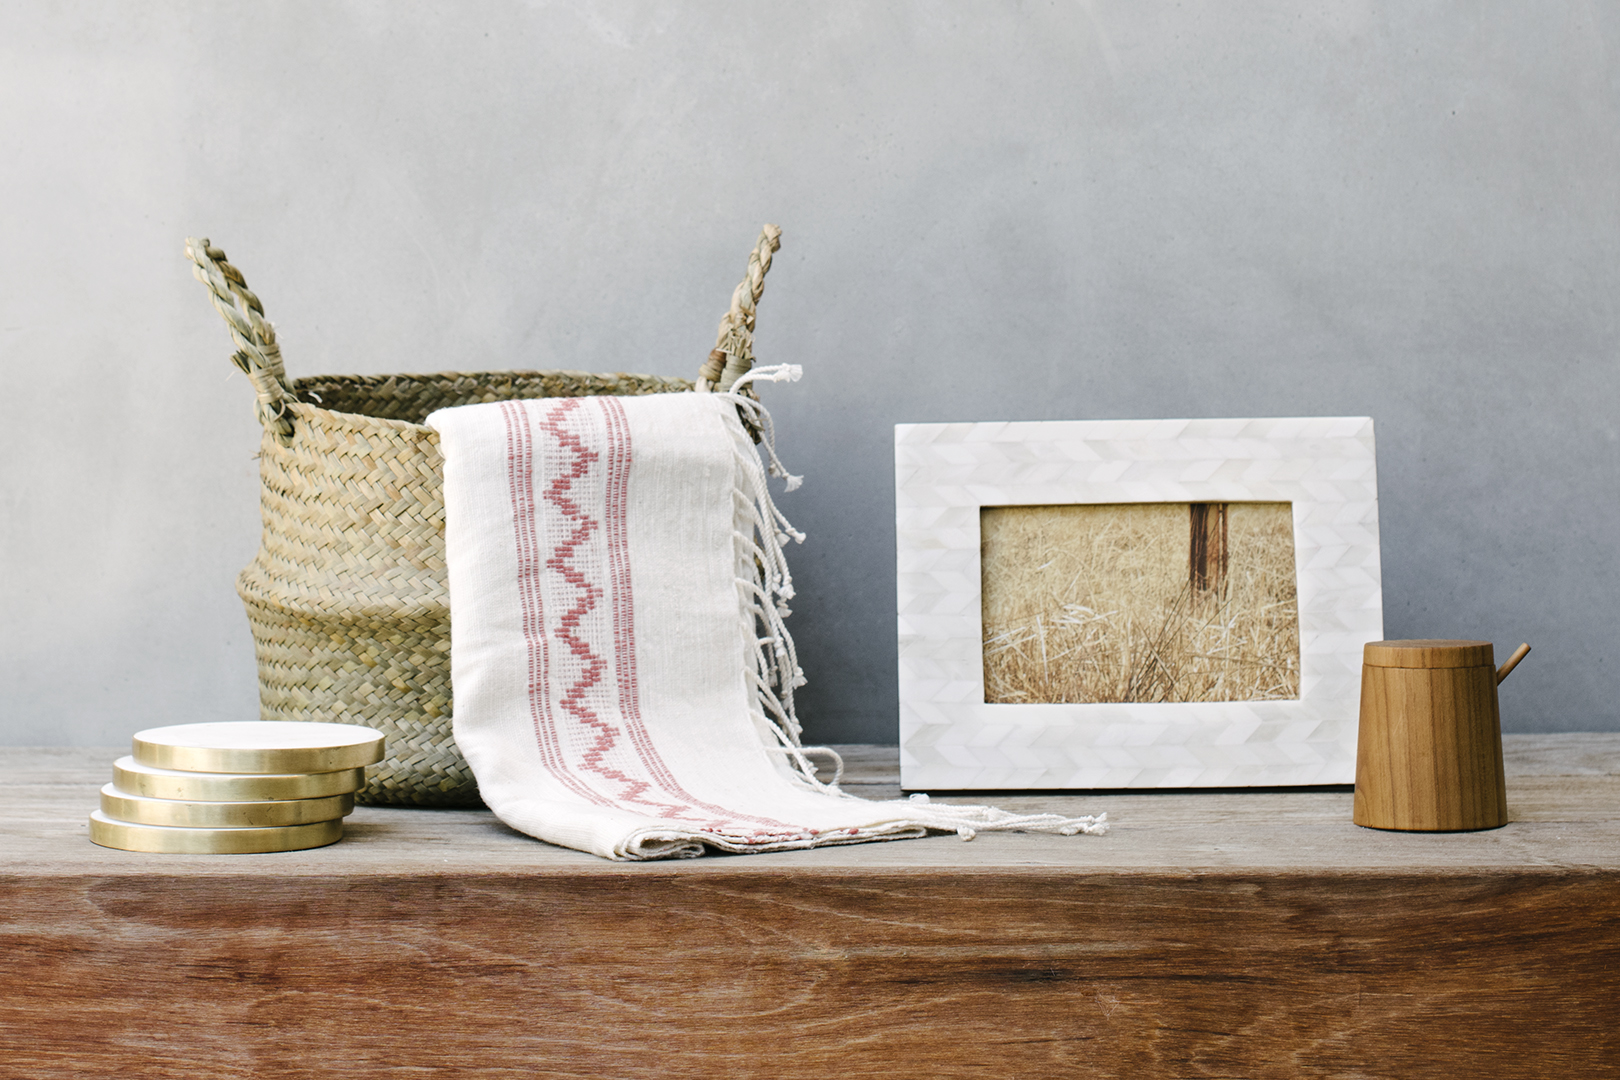 A California Fall :   : Brass Edged Marble Coasters :: Ethiopian Cotton Hand Towel :: Handwoven Seagrass Belly Basket :: Bone Inlay Herringbone Frame :: Teak Salt Cellar with Lid & Spoon